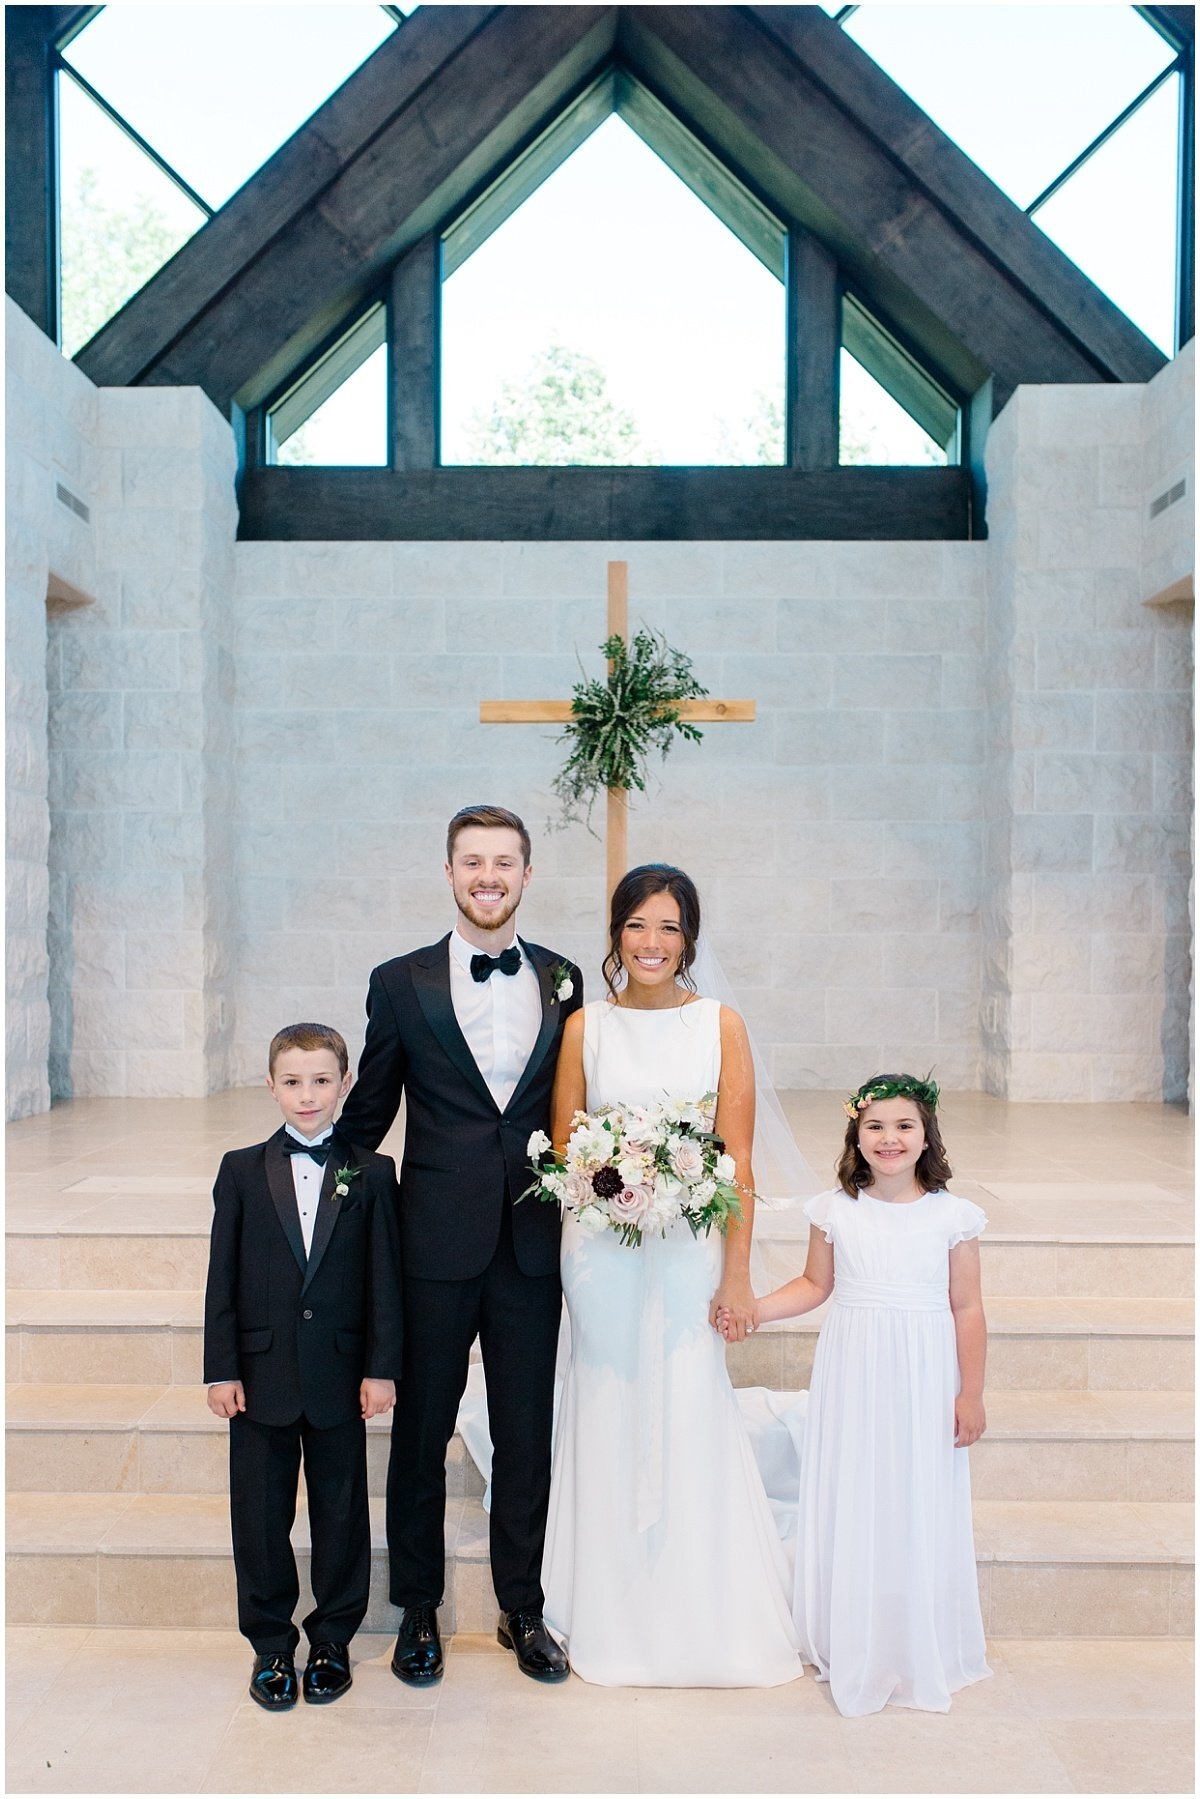 the-chapel-on-mcever-wedding-dahlonega-north-georgia-wedding-photographer-atlanta-laura-barnes-photo-52